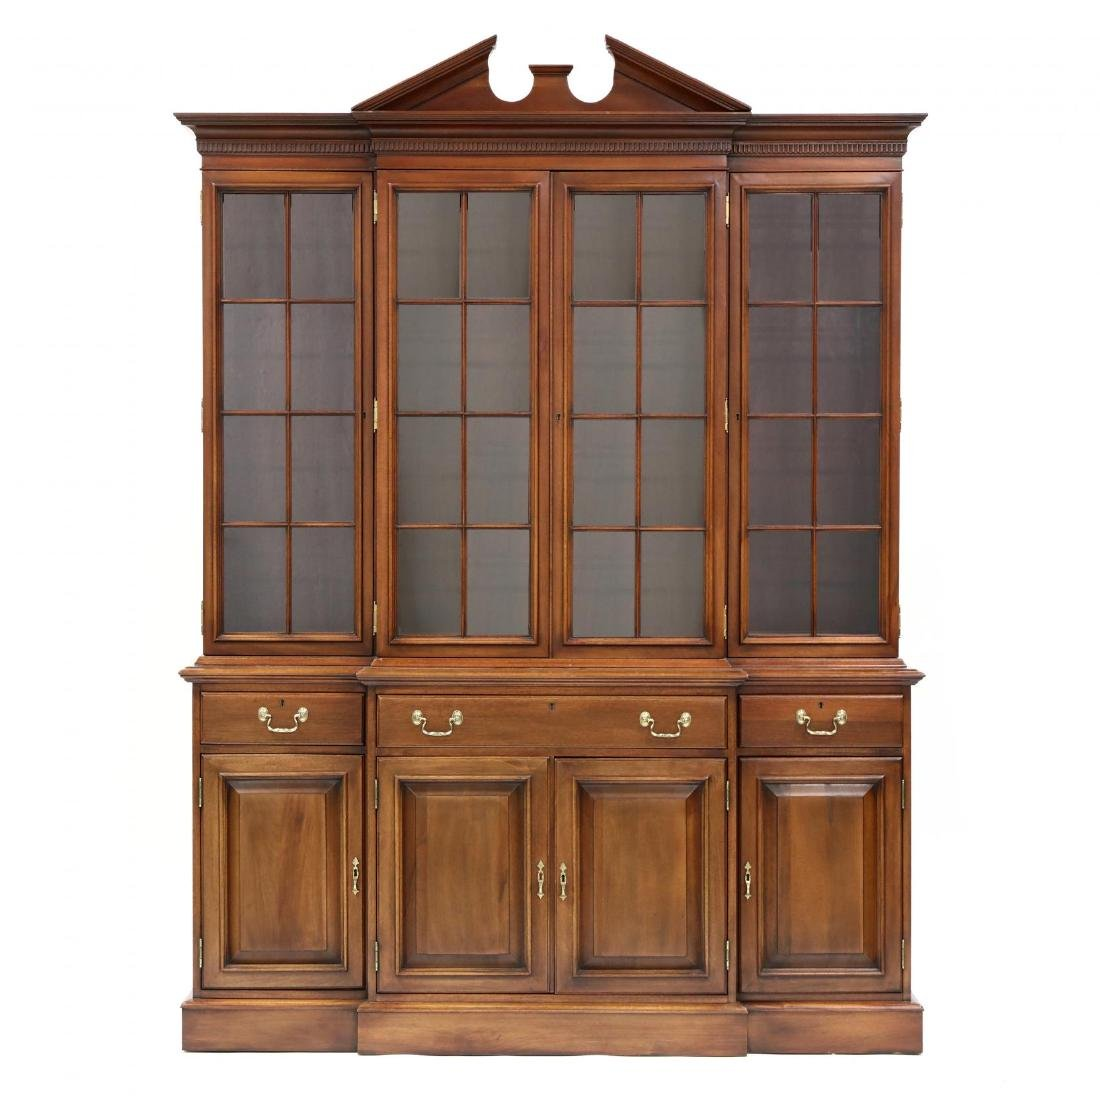 Link-Taylor, Chippendale Style Mahogany Breakfront